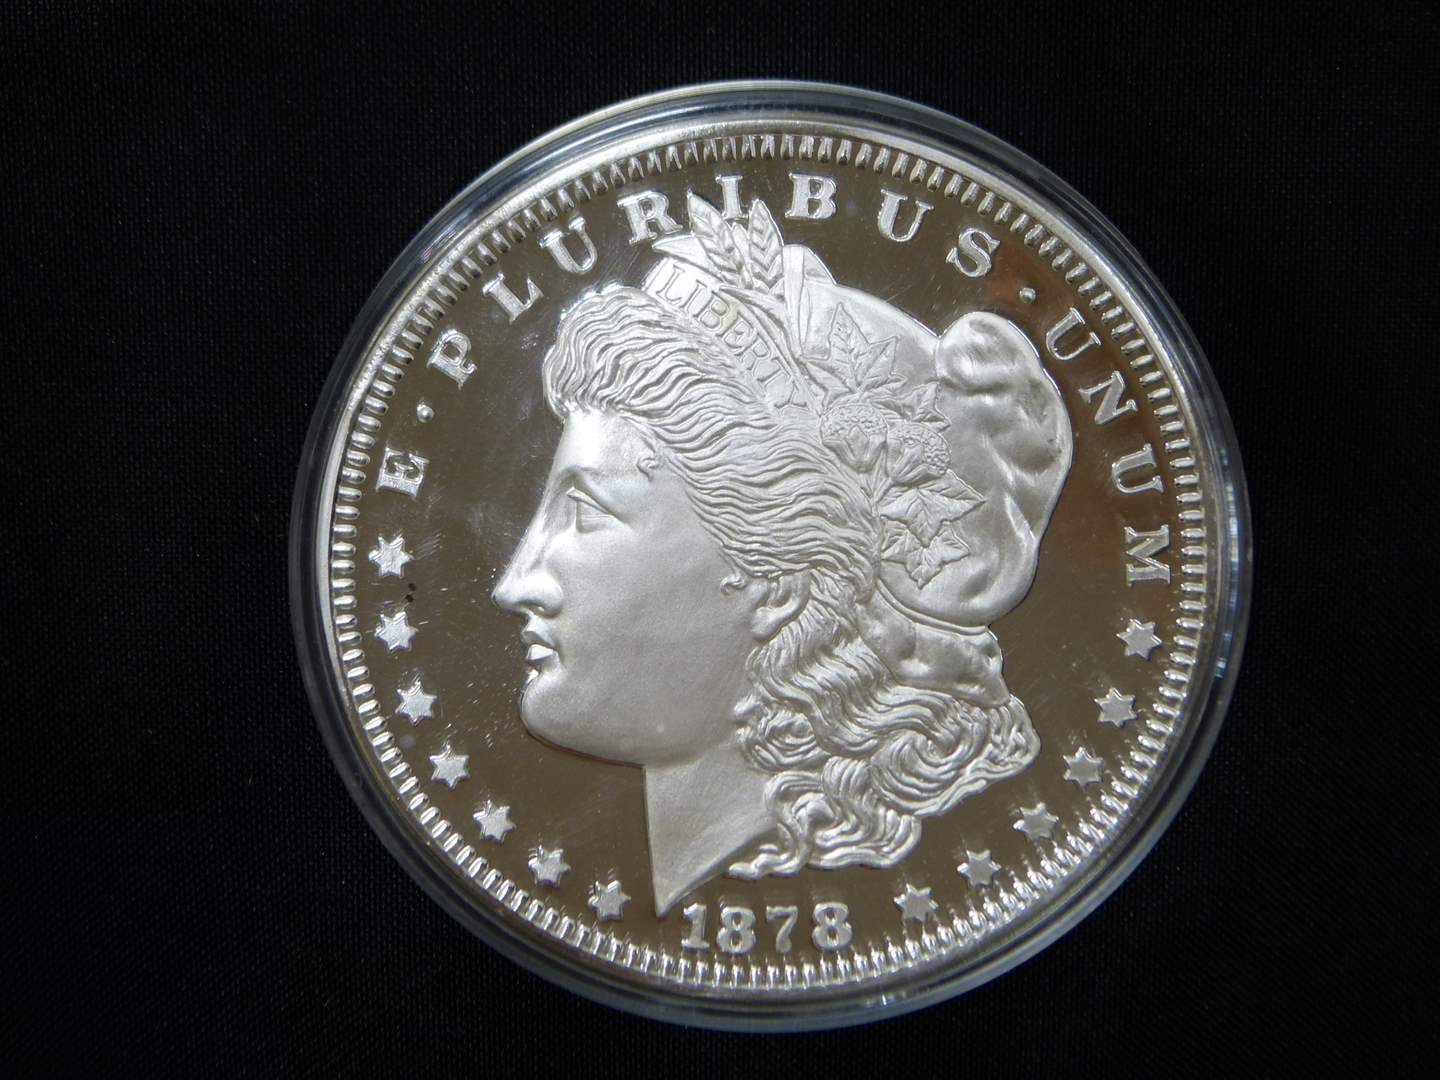 Lot # 2  WOW Limited Edition #00300 1/2 POUND PURE SILVER Morgan (YES HALF POUND) (main image)